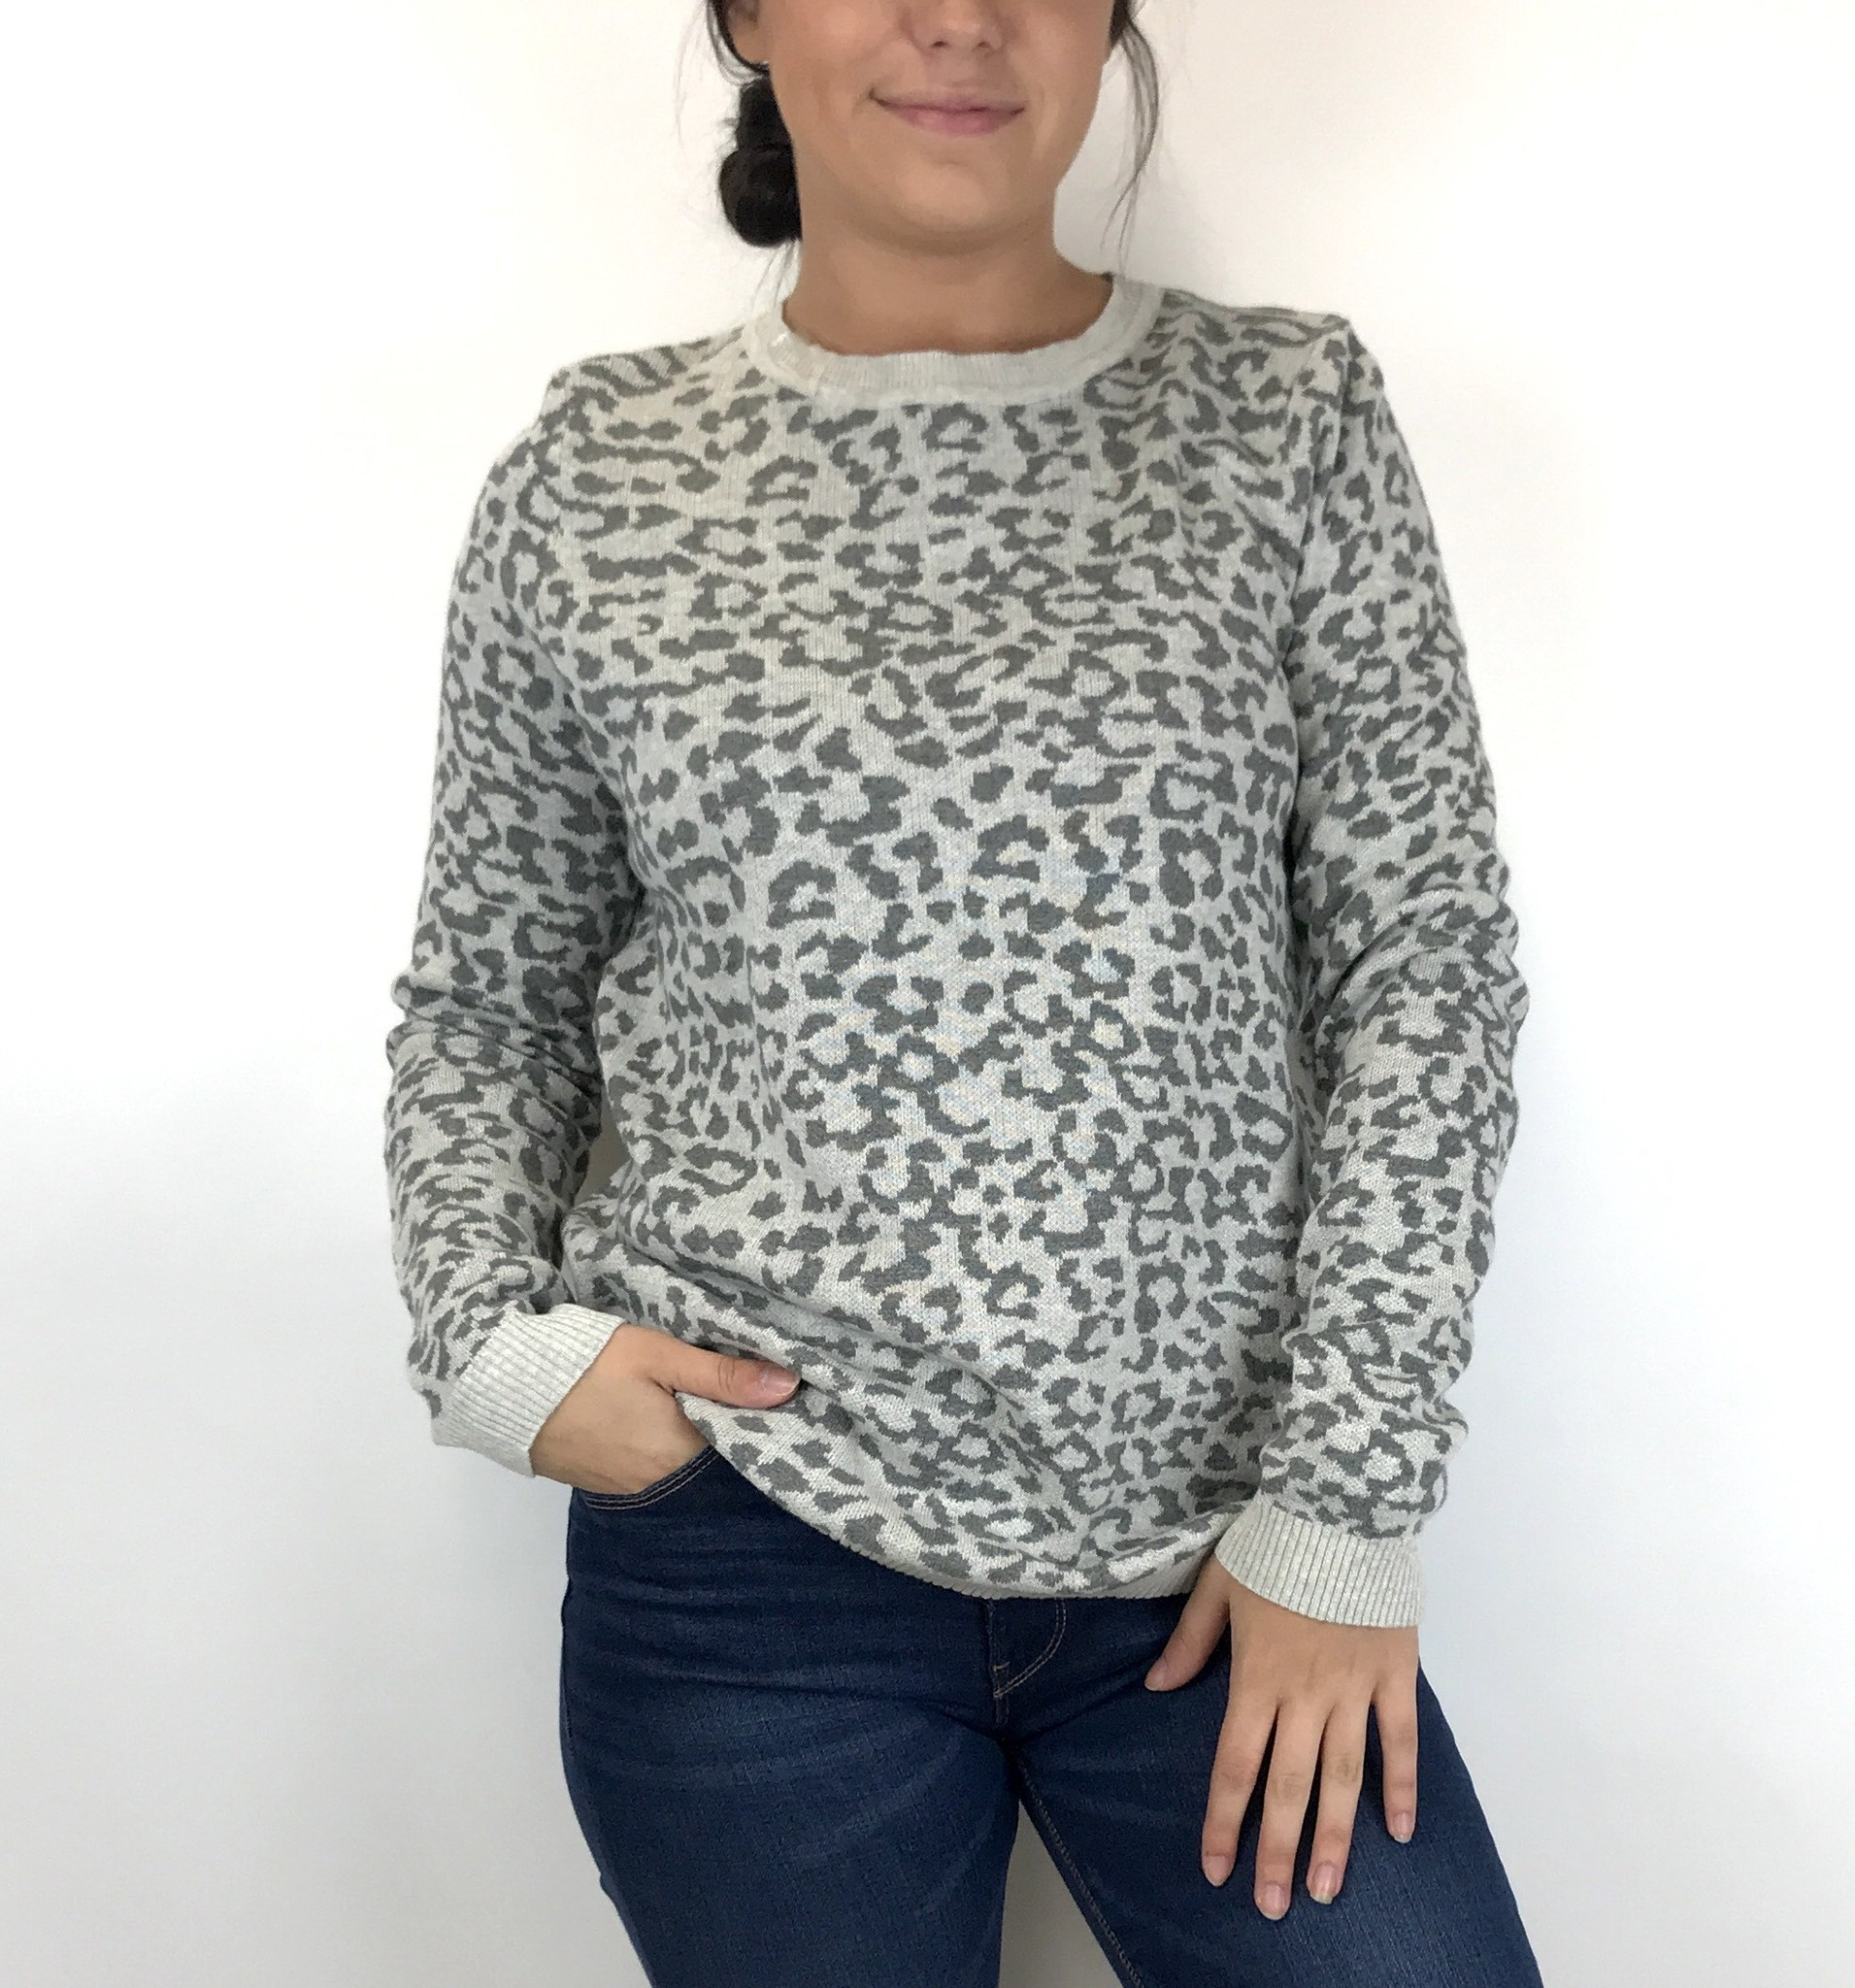 Staccato Staccato Leopard Crew P/O Swtr Gry 52274